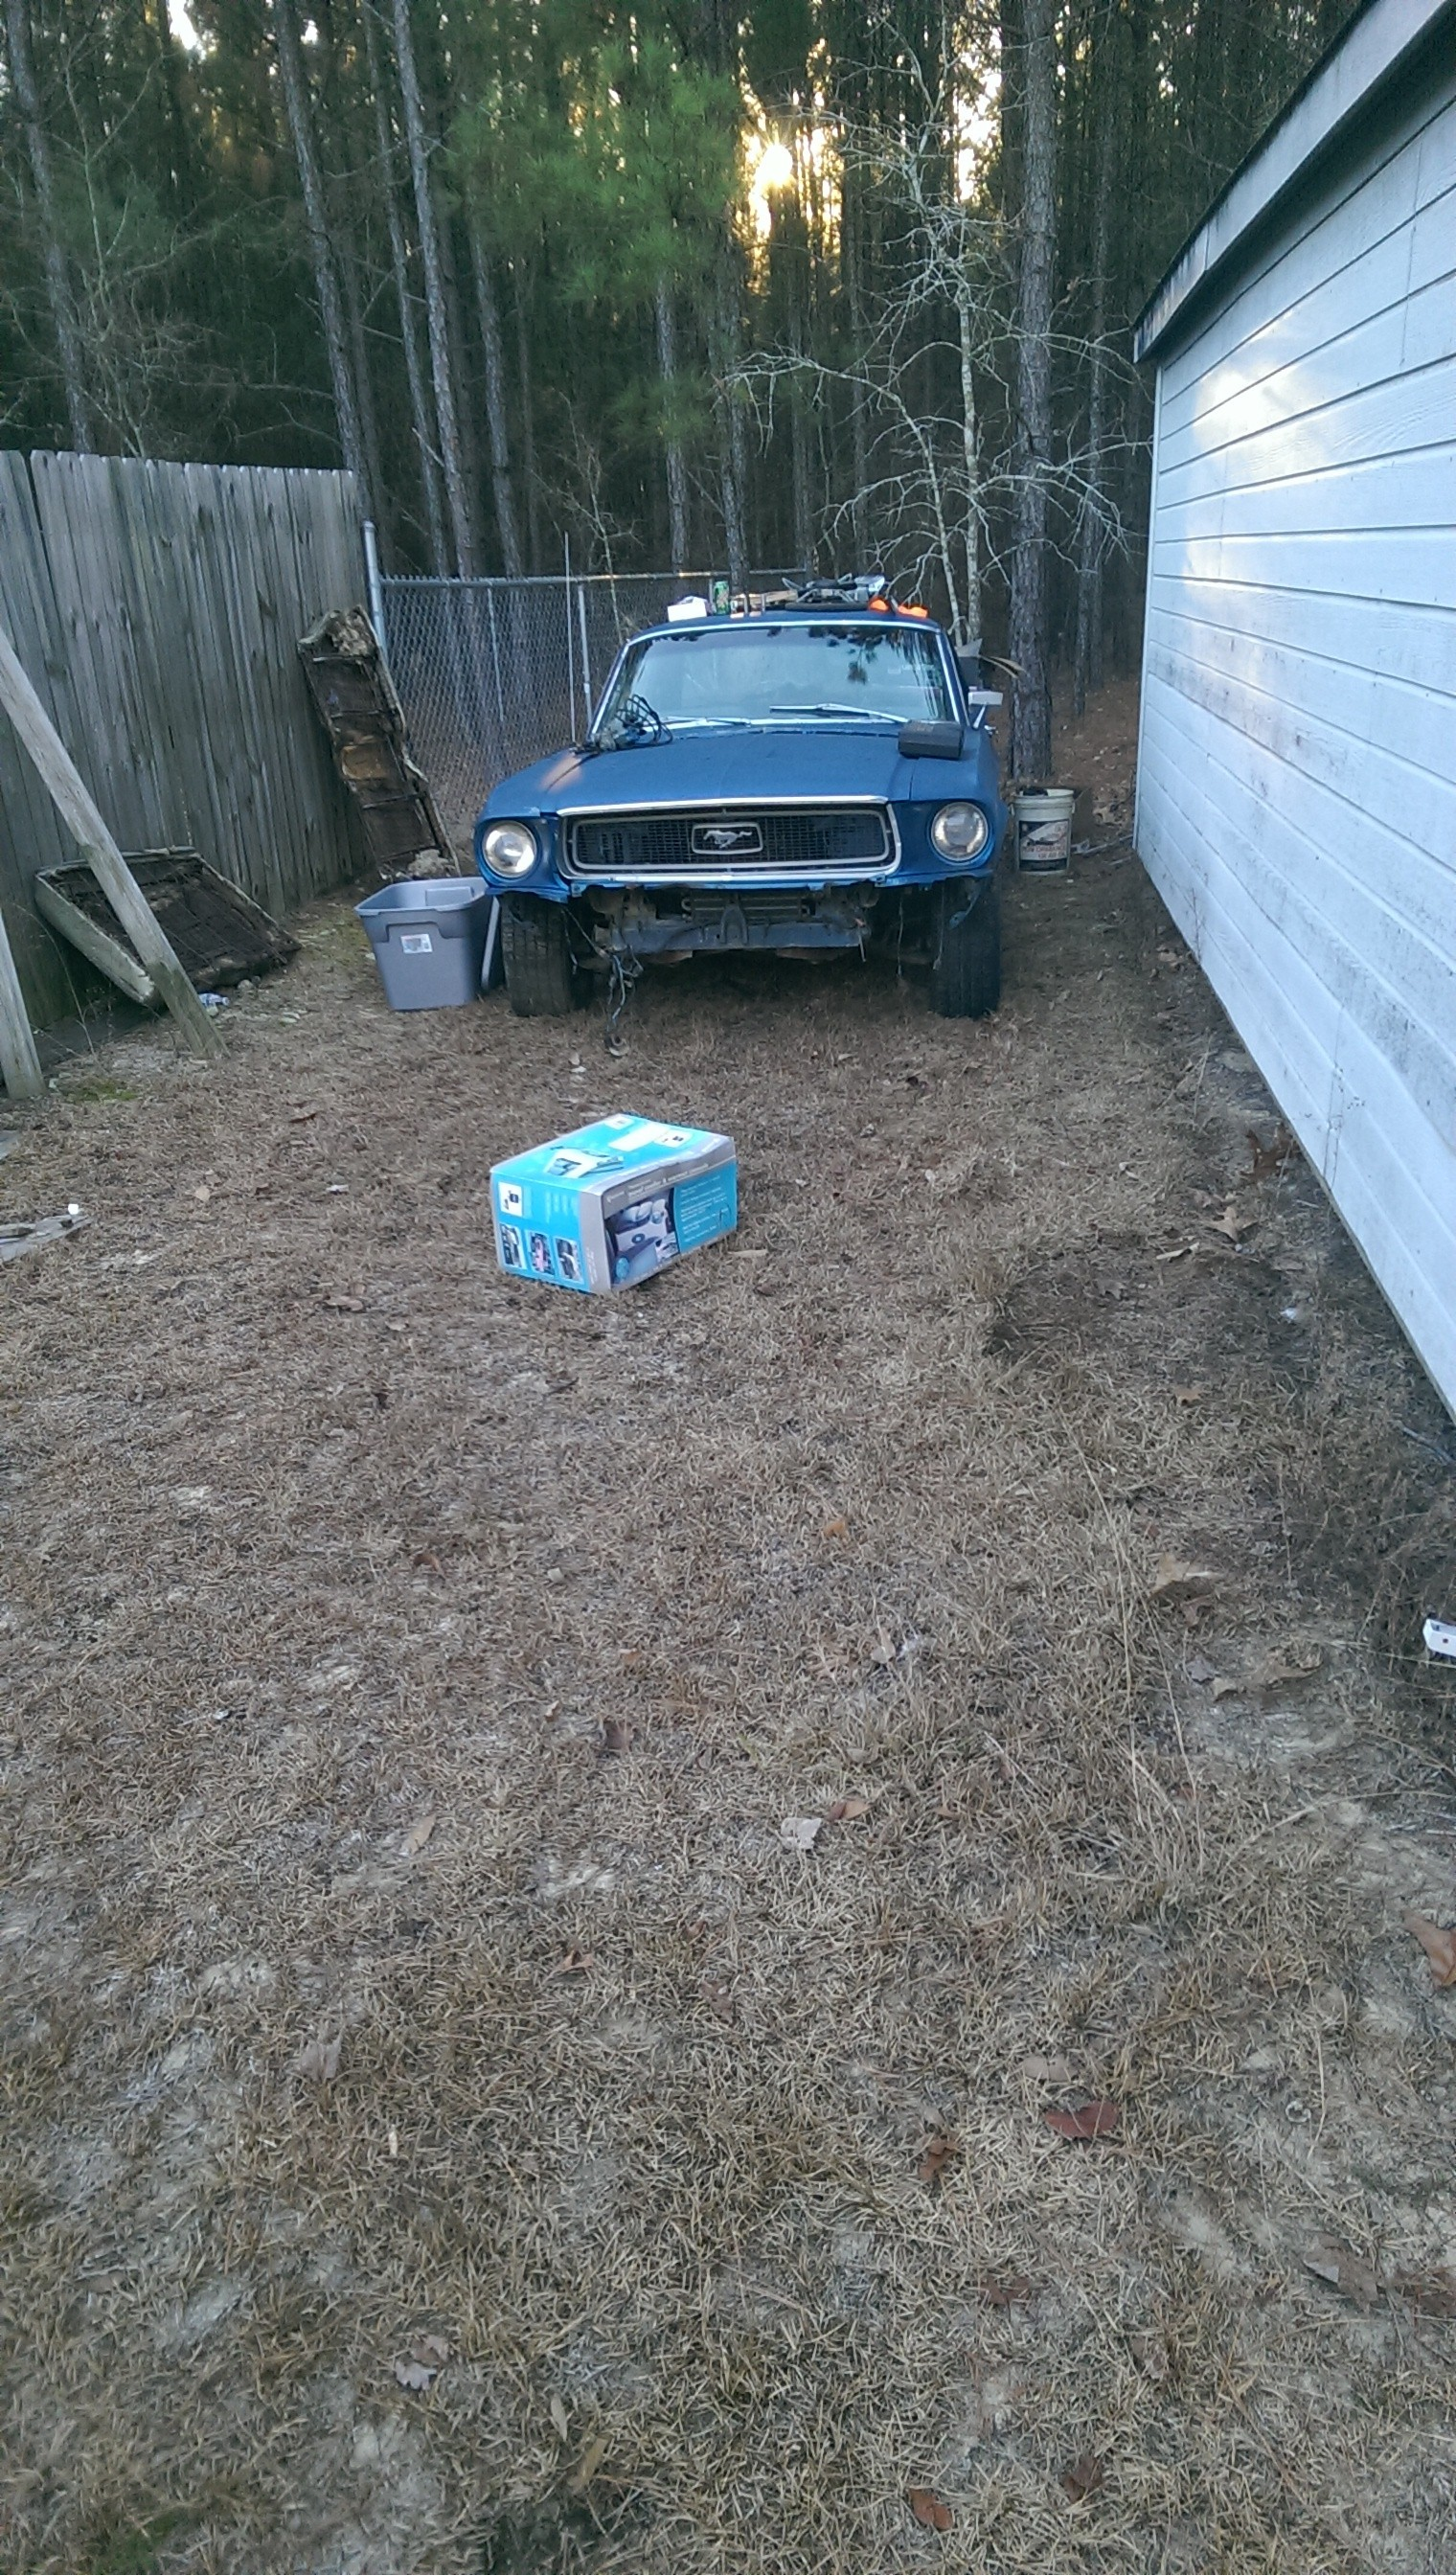 1968 Mustang Bought for $1,800 Makes for a Nice Christmas Present